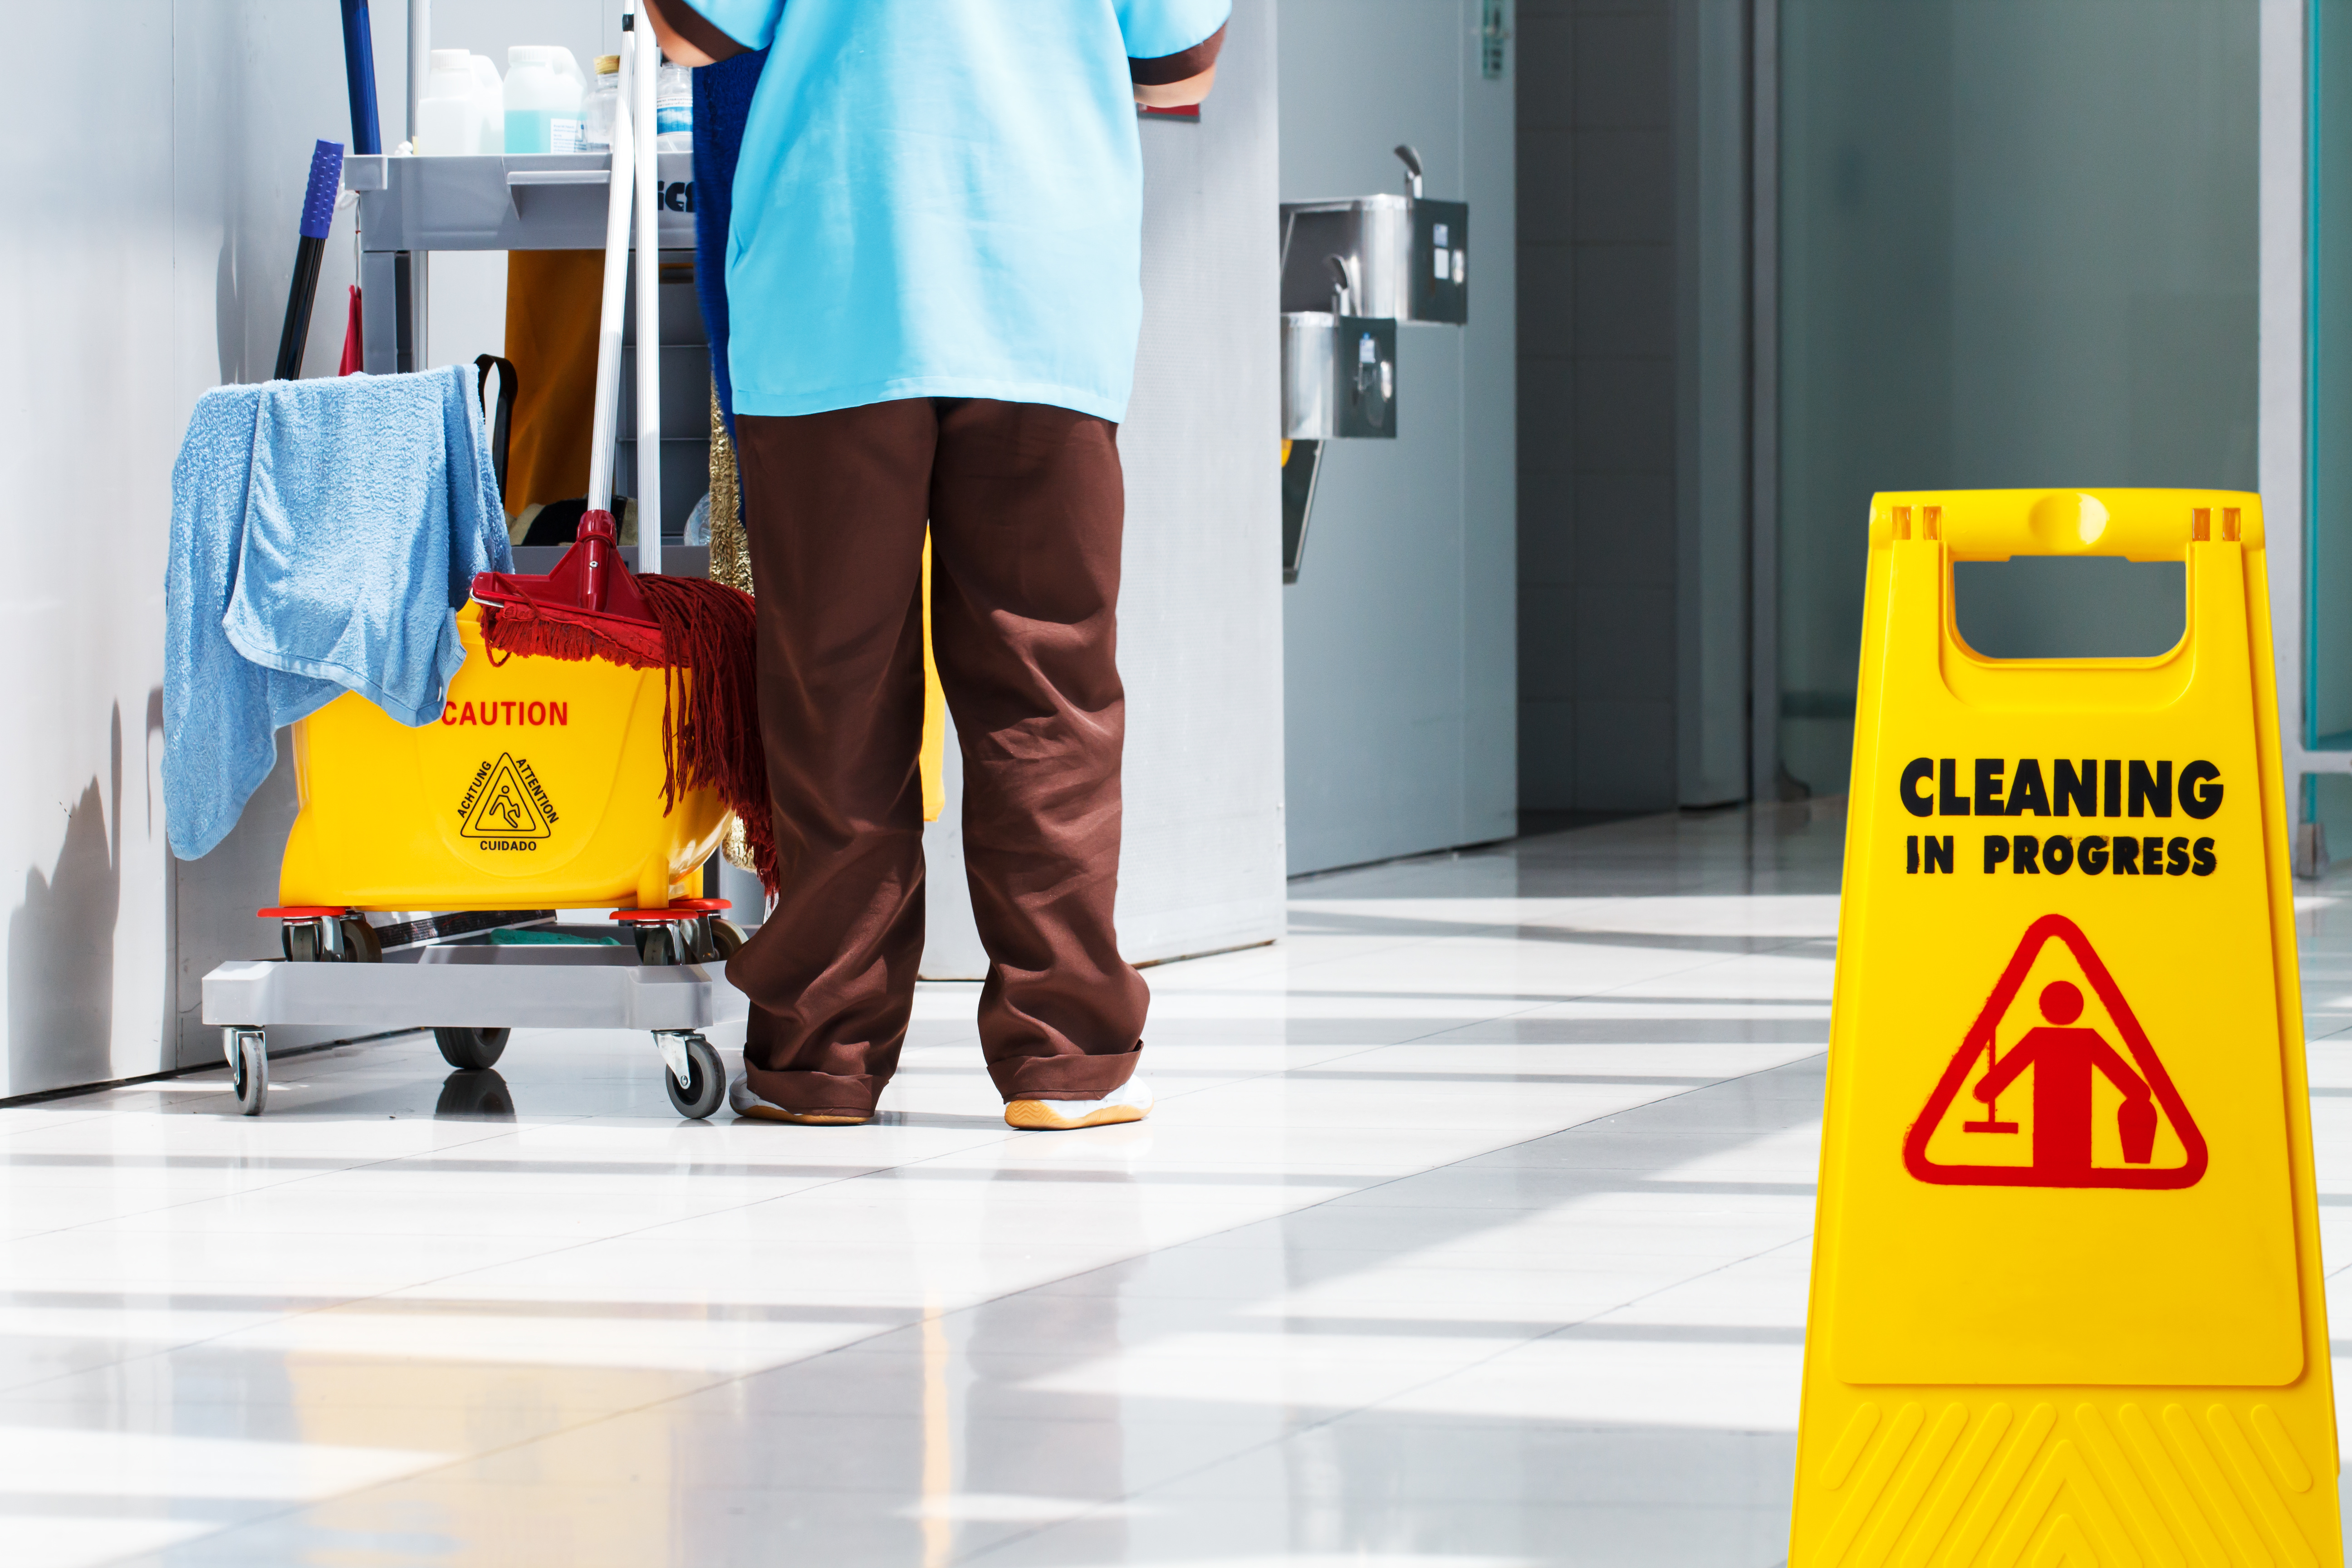 Janitorial and mop bucket on cleaning